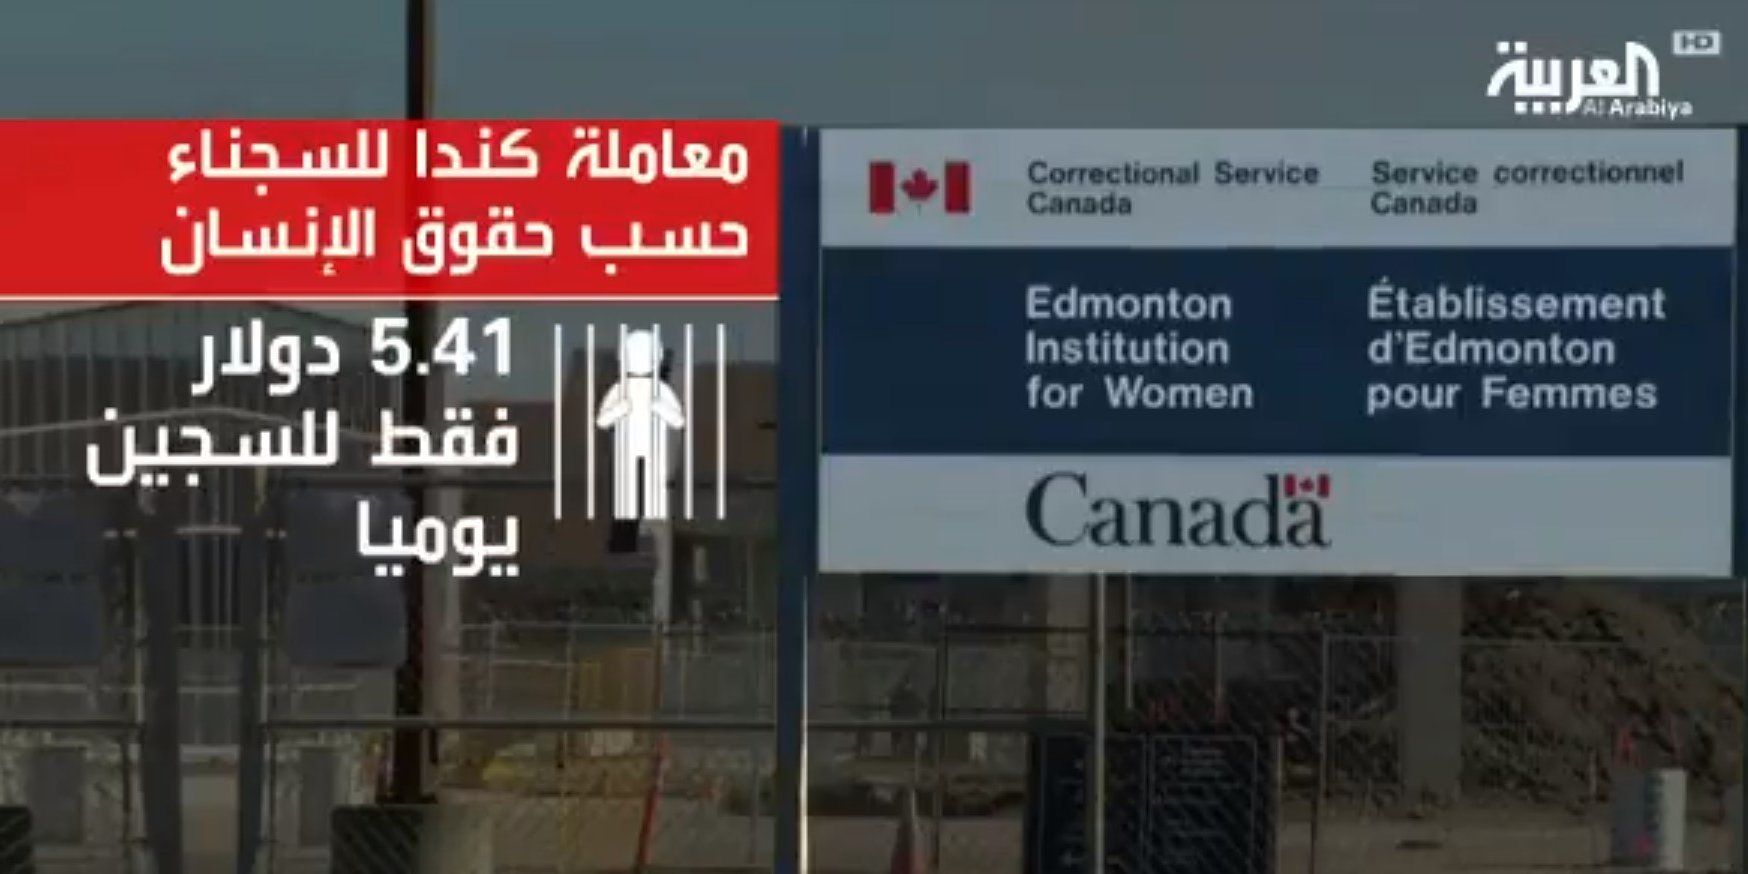 Saudiowned media just called out Canada's human rights